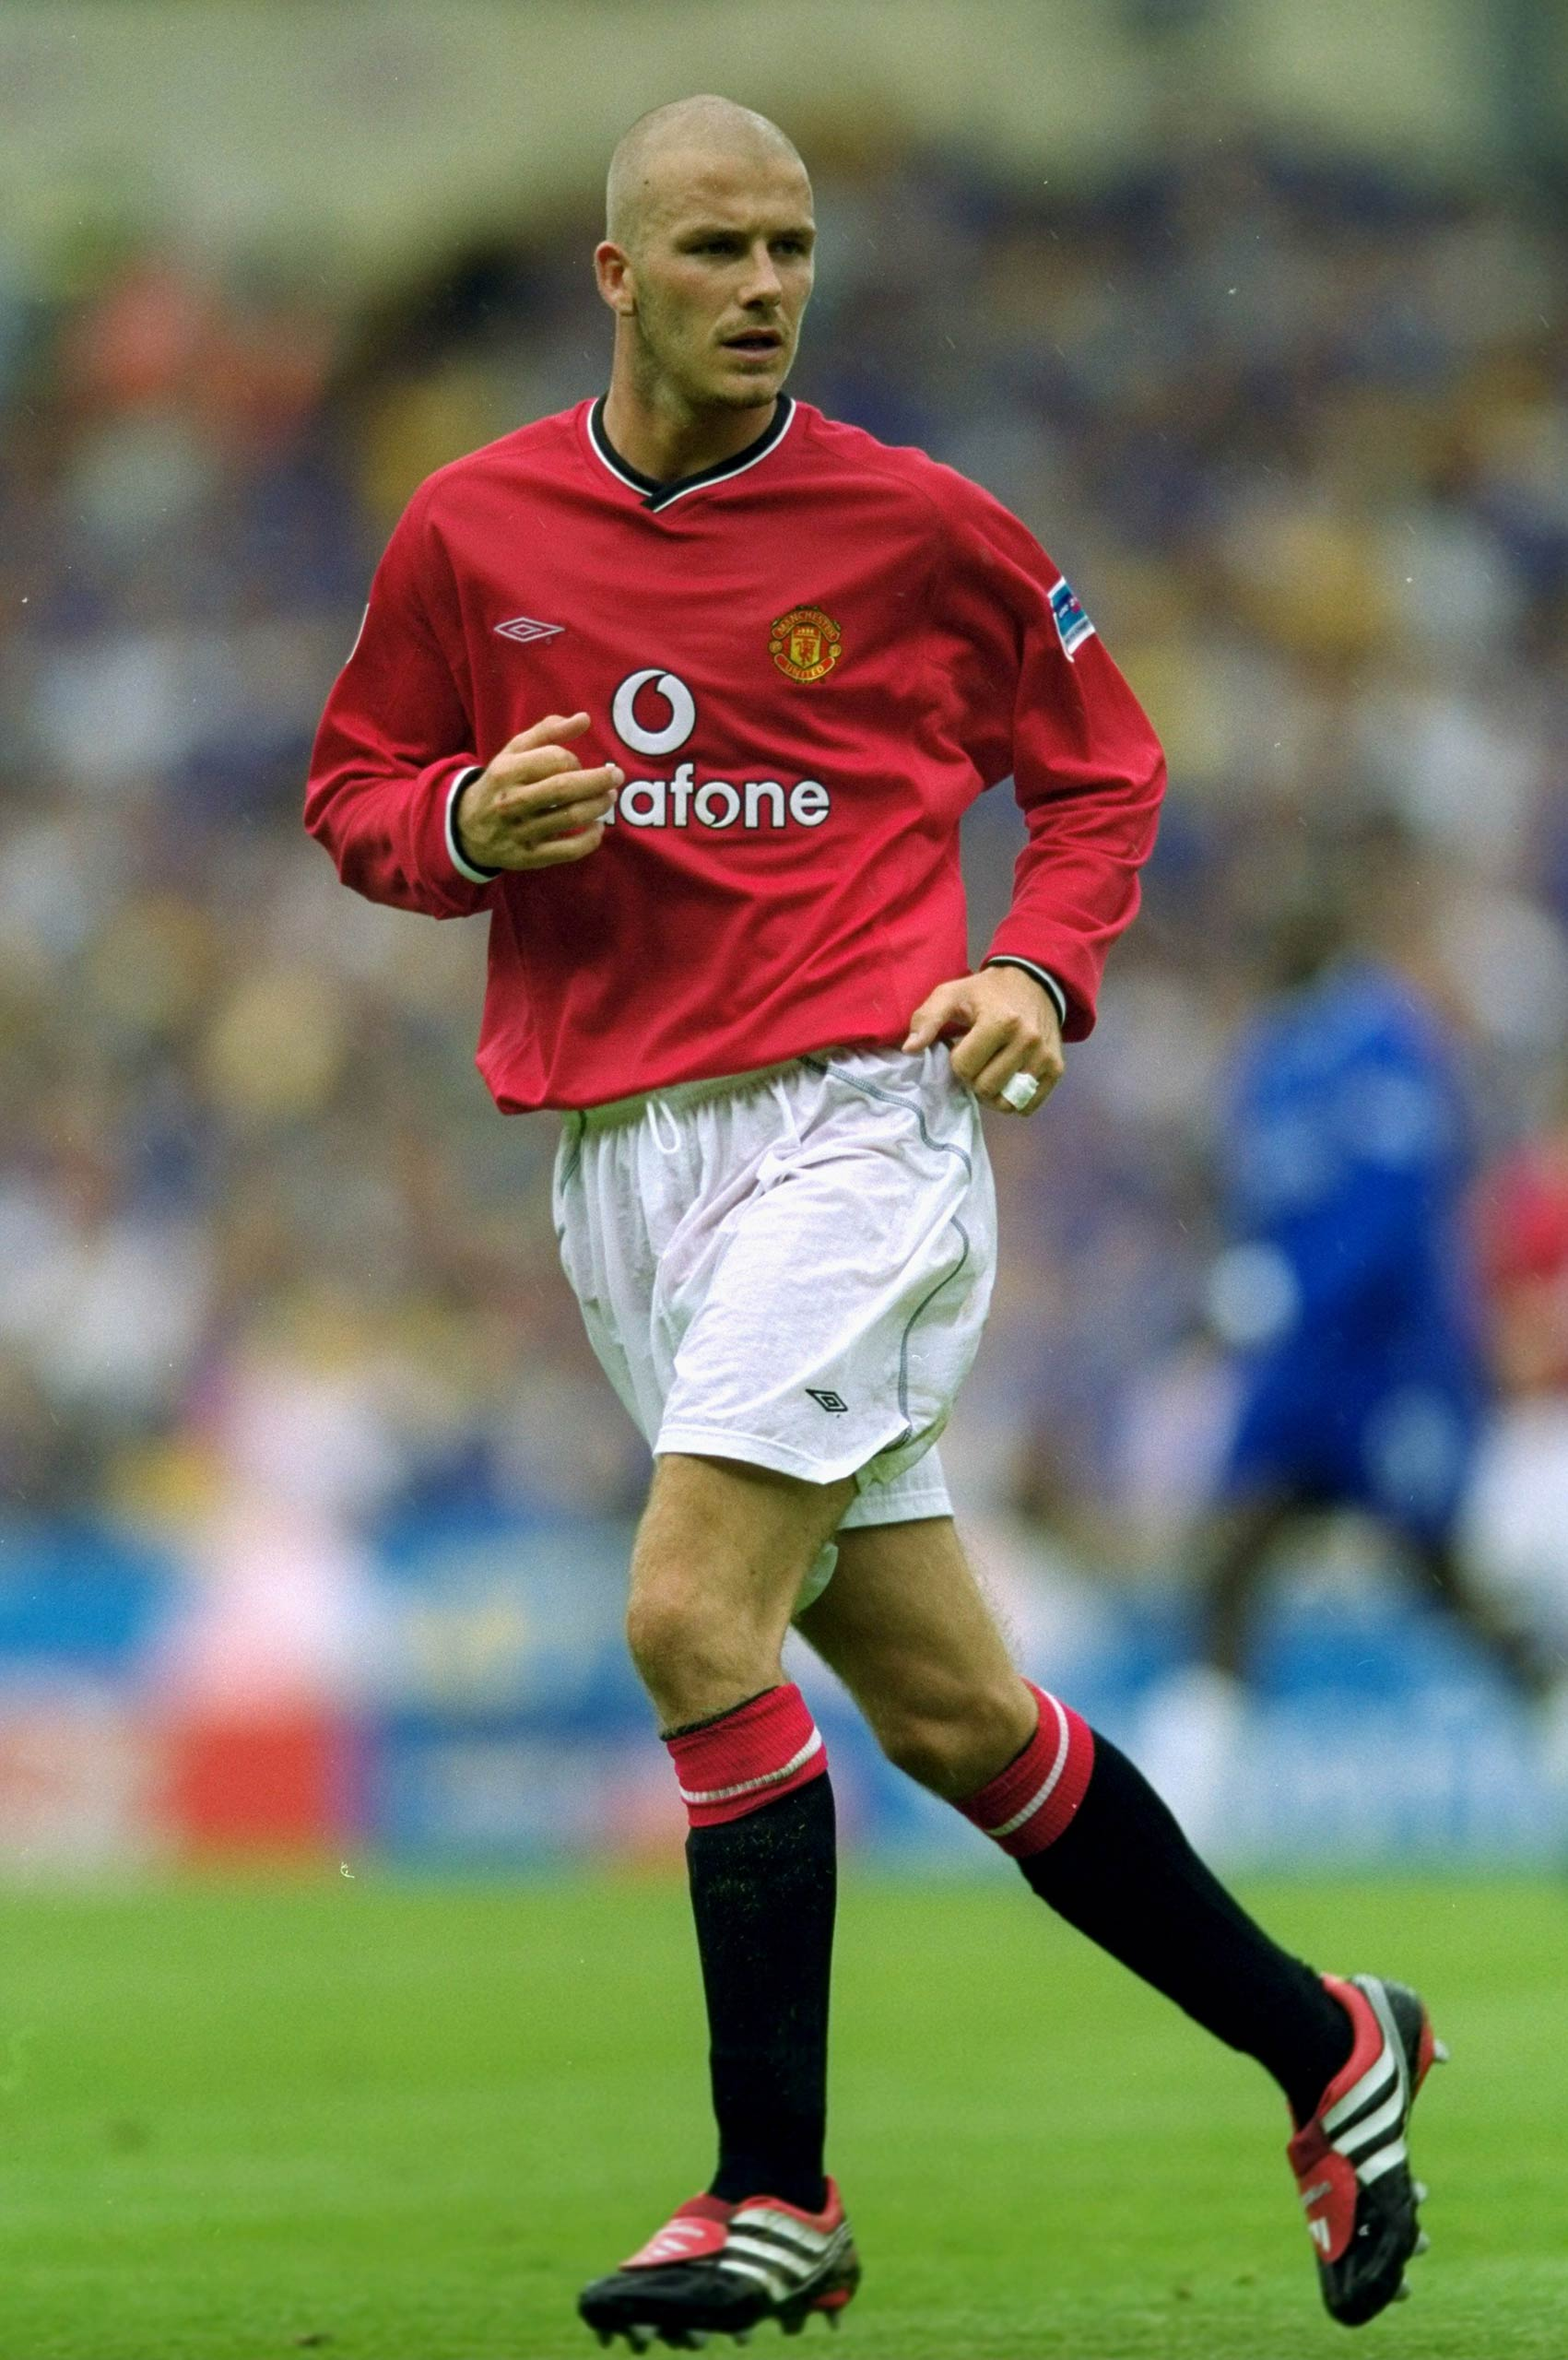 David Beckham of Manchester United during the Charity Shield against Chelsea at Wembley Stadium in London in 2000.